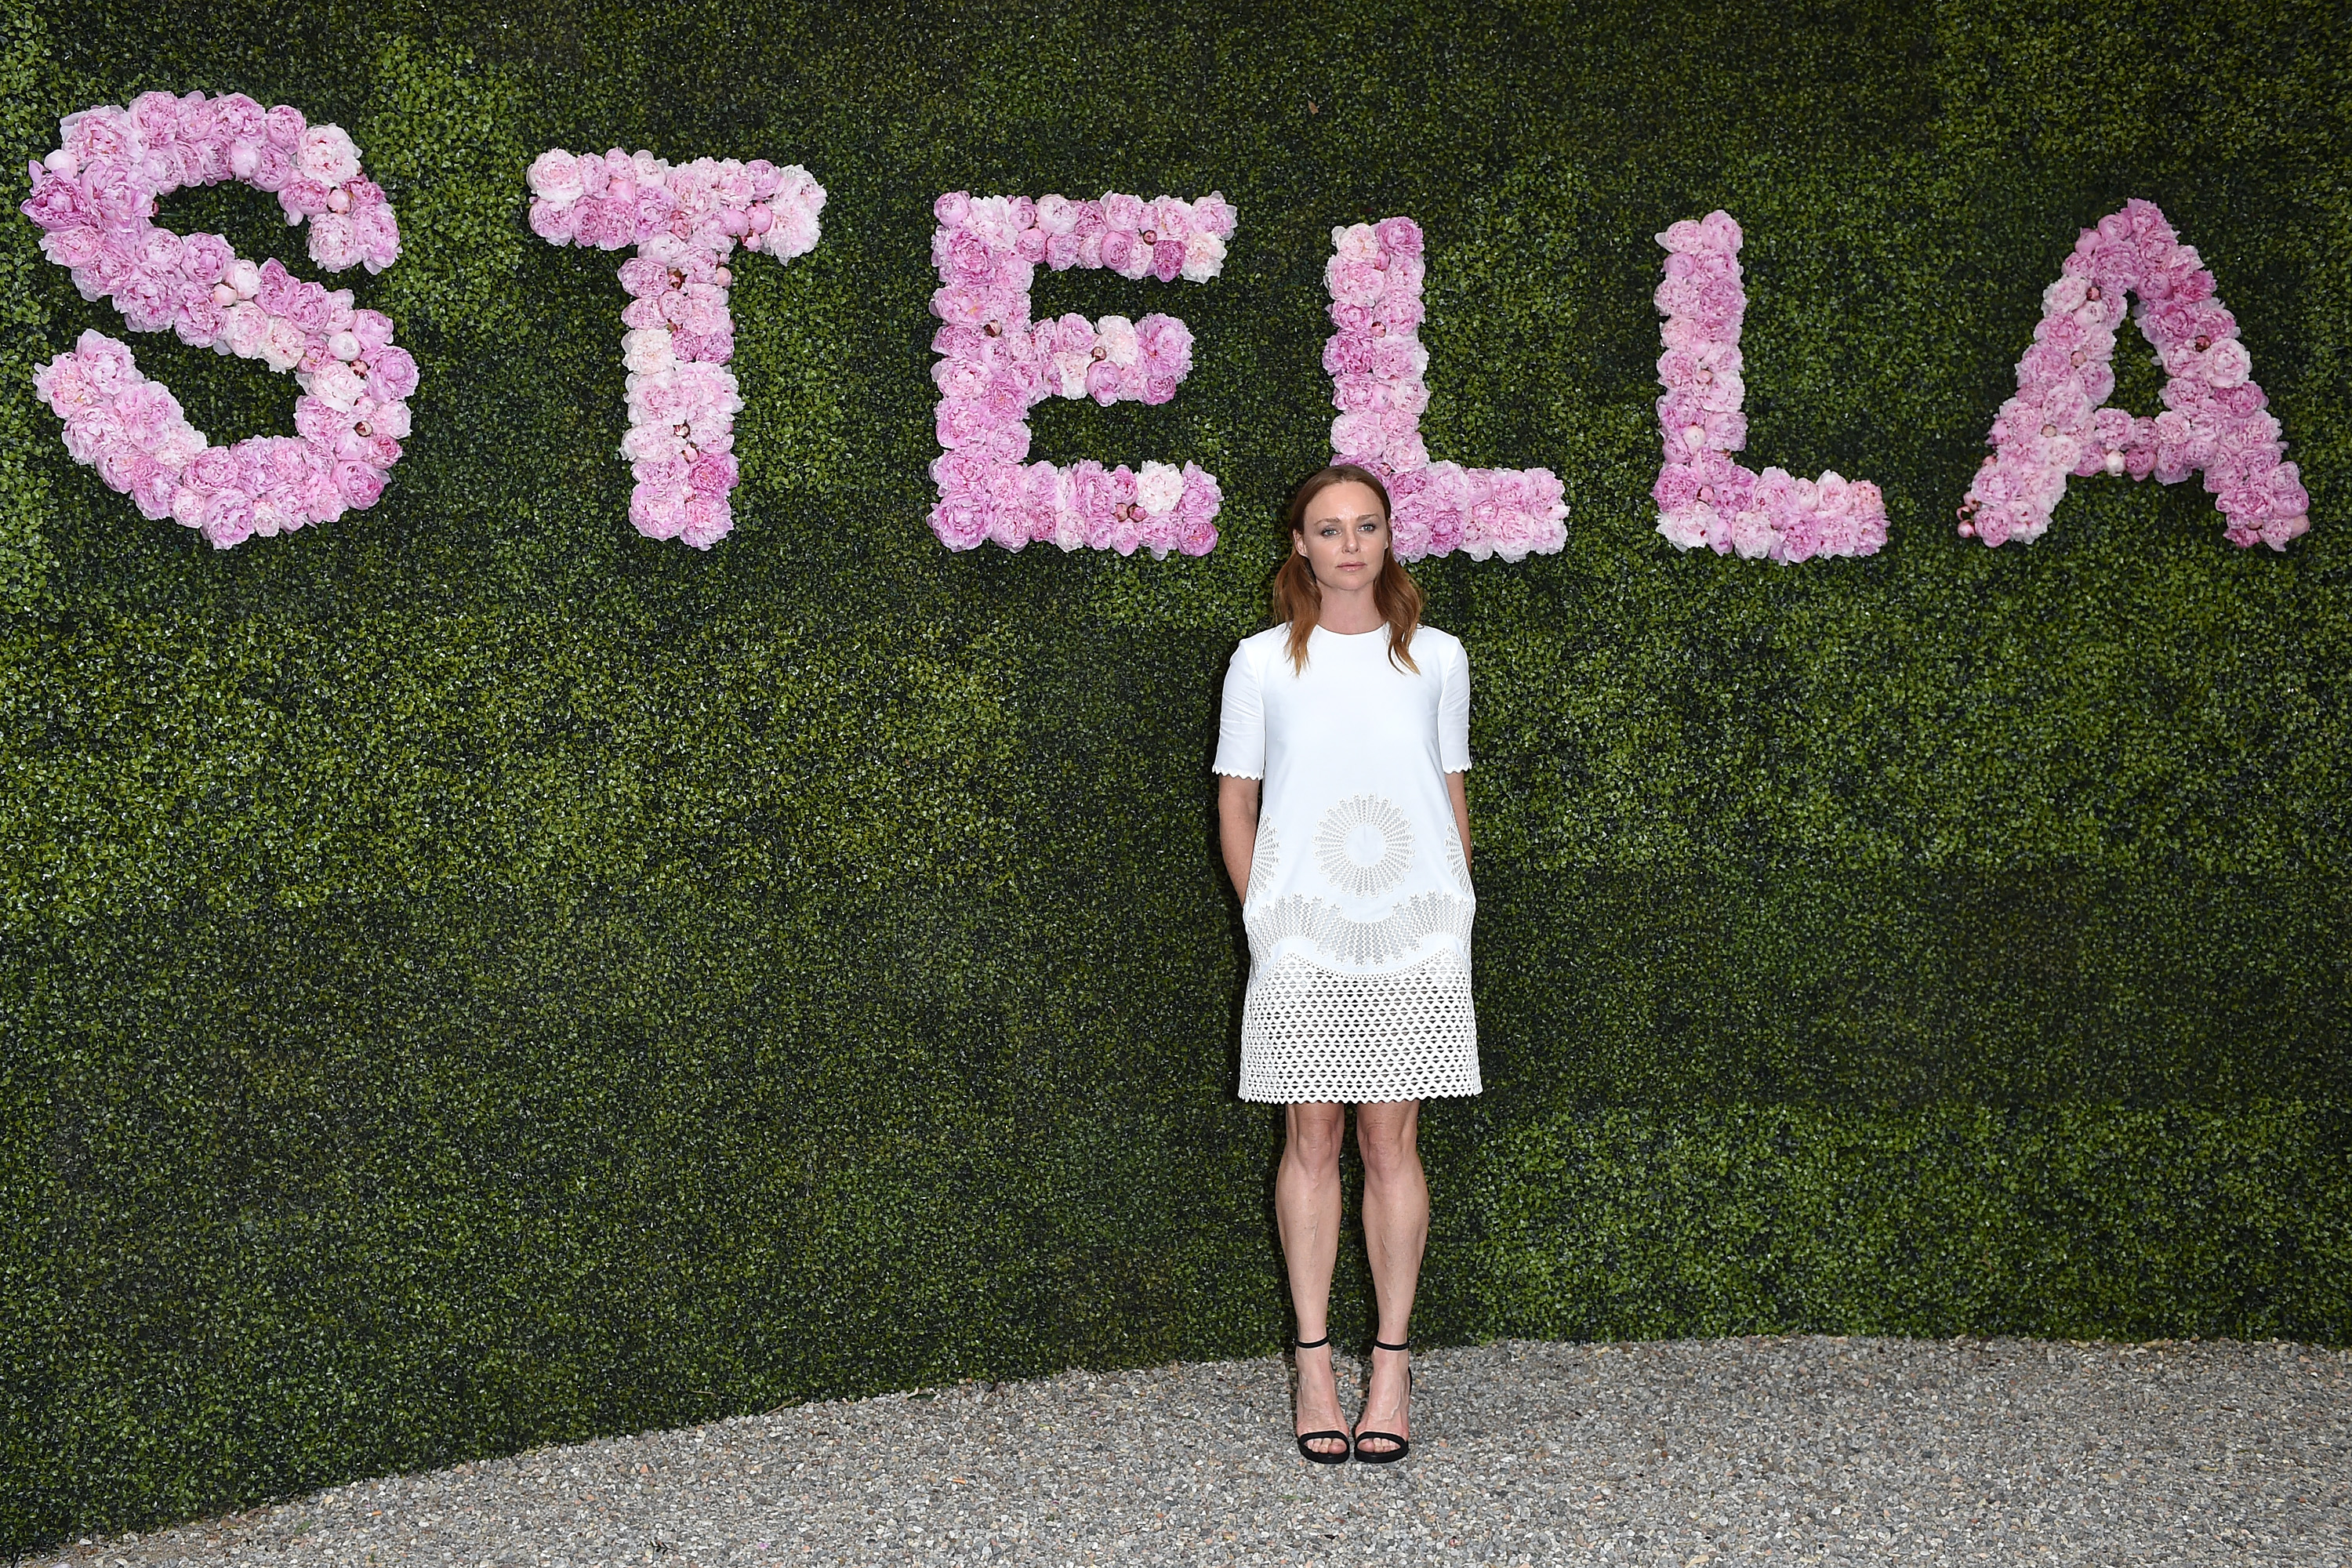 MILAN, ITALY - JUNE 23: Stella McCartney attends the Stella McCartney Garden Party during the Milan Fashion Week Menswear Spring/Summer 2015 on June 23, 2014 in Milan, Italy. (Photo by Jacopo Raule/Getty Images)